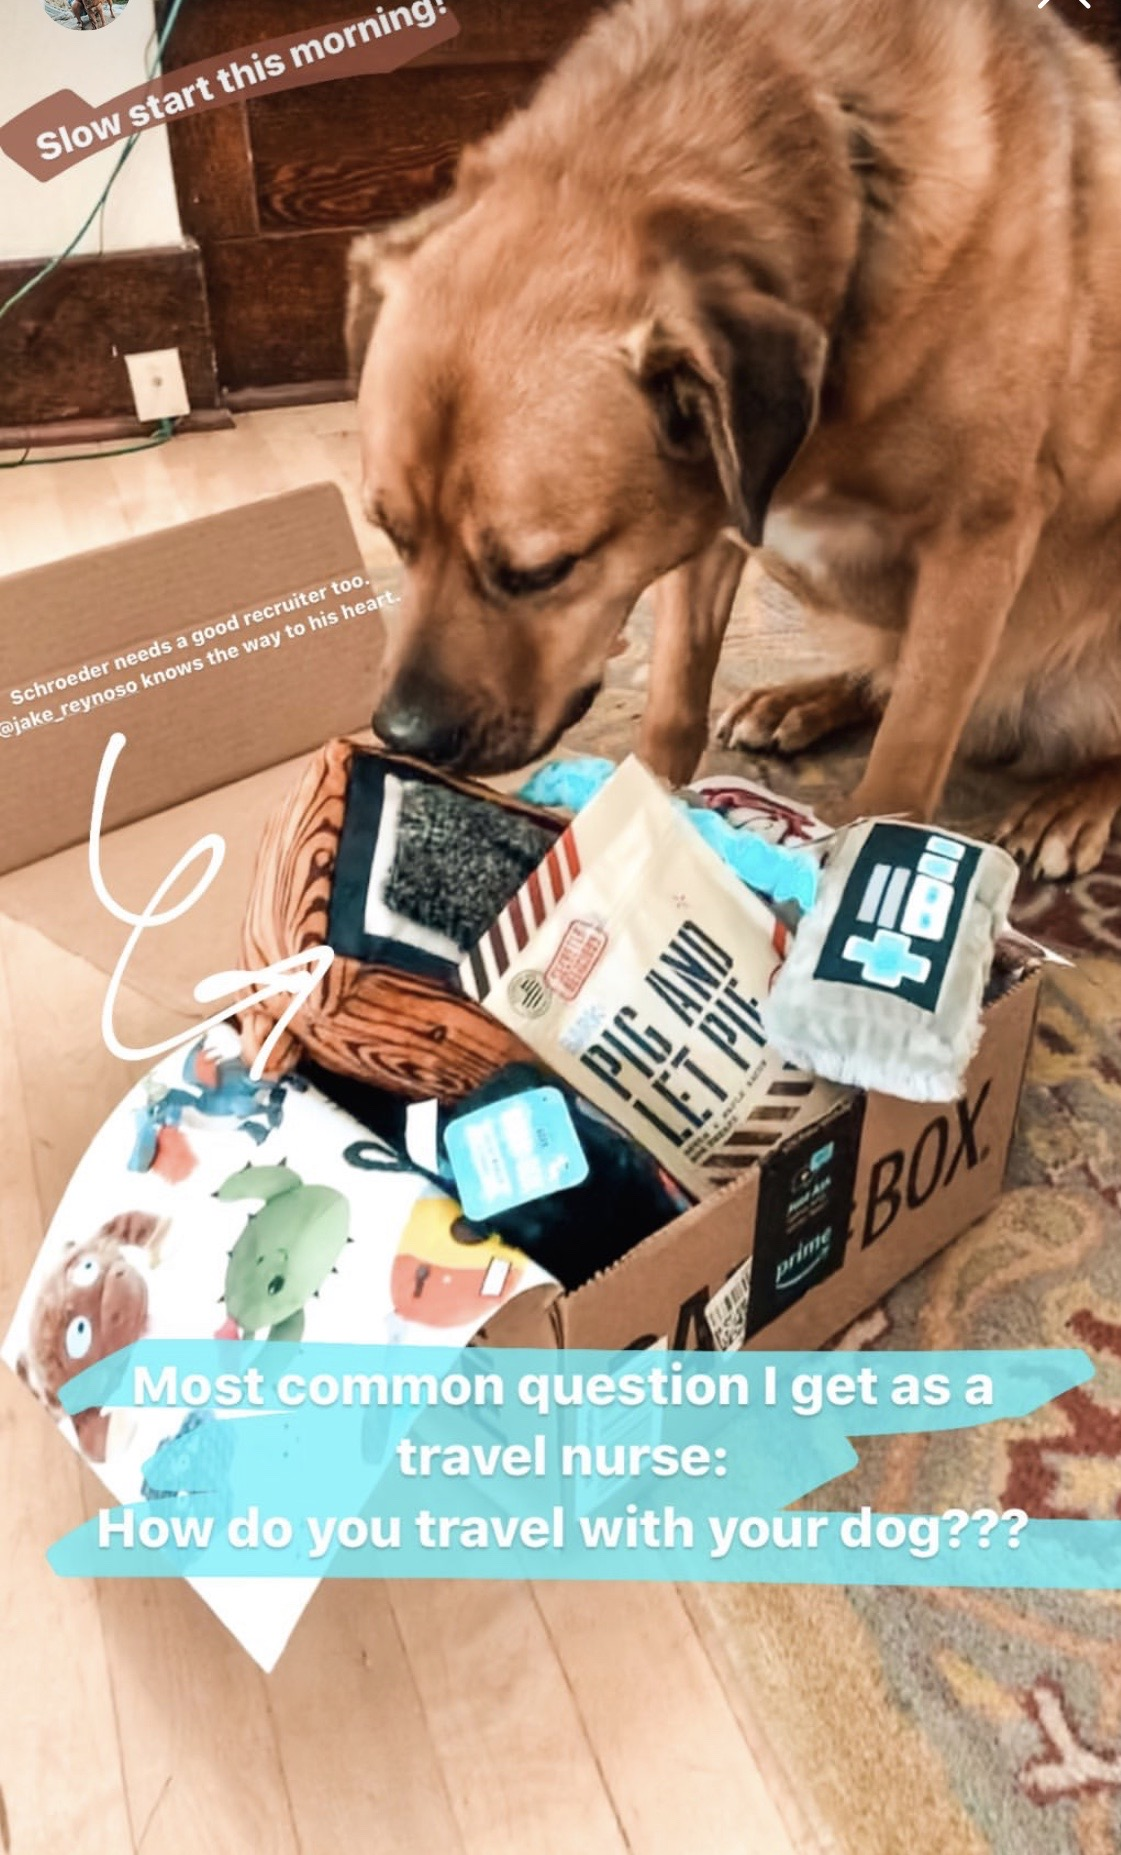 Travel Nurse Shelby's doggy sniffing around a box of goodies for him.